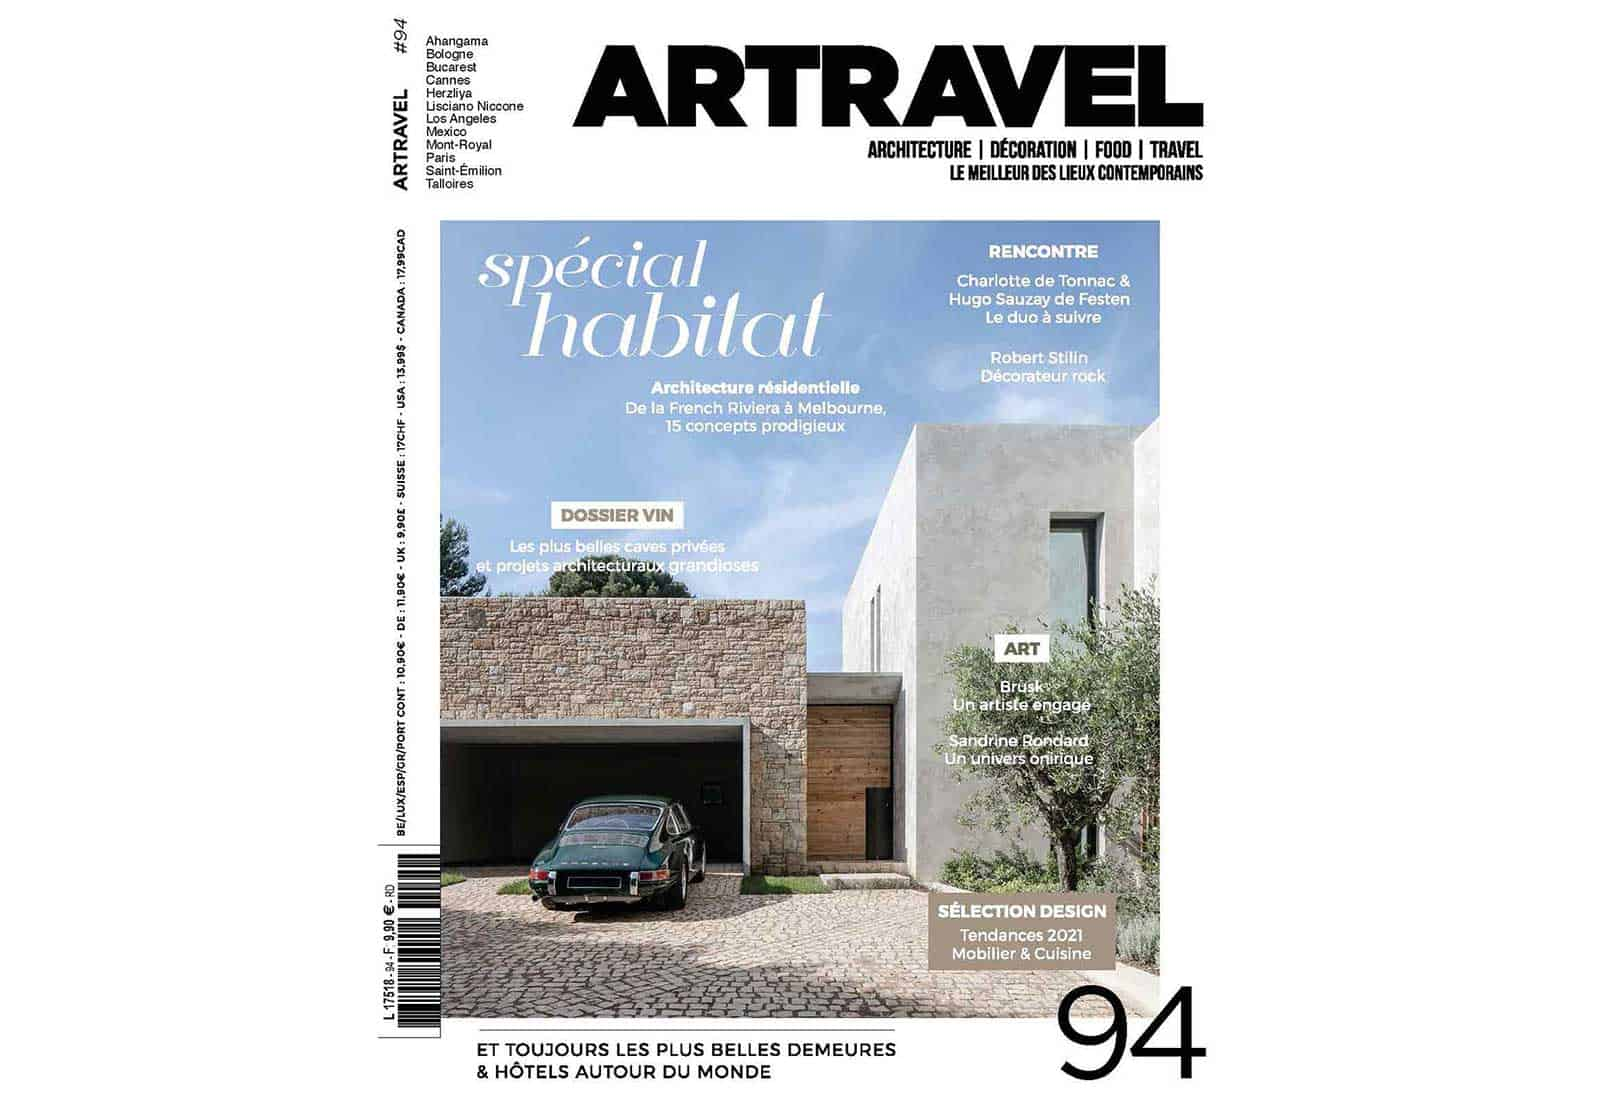 Artravel article archidomo villa akila, Annecy Talloires - n94 couverture